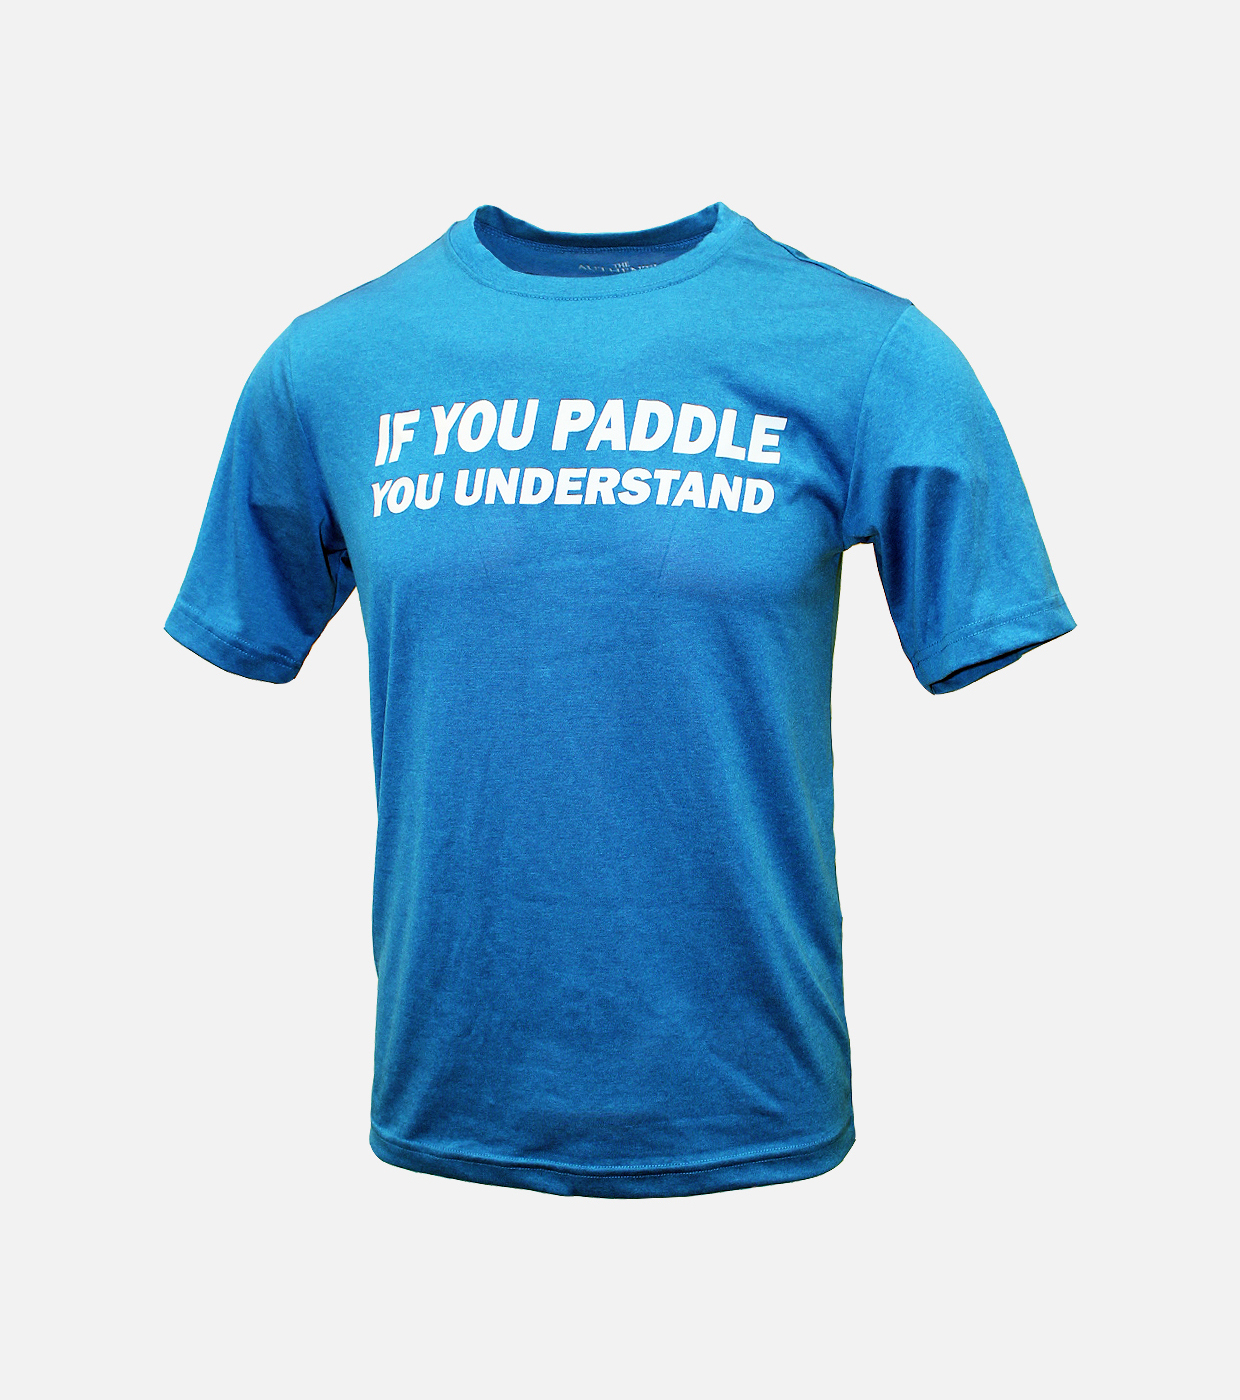 If you paddle you understand blue